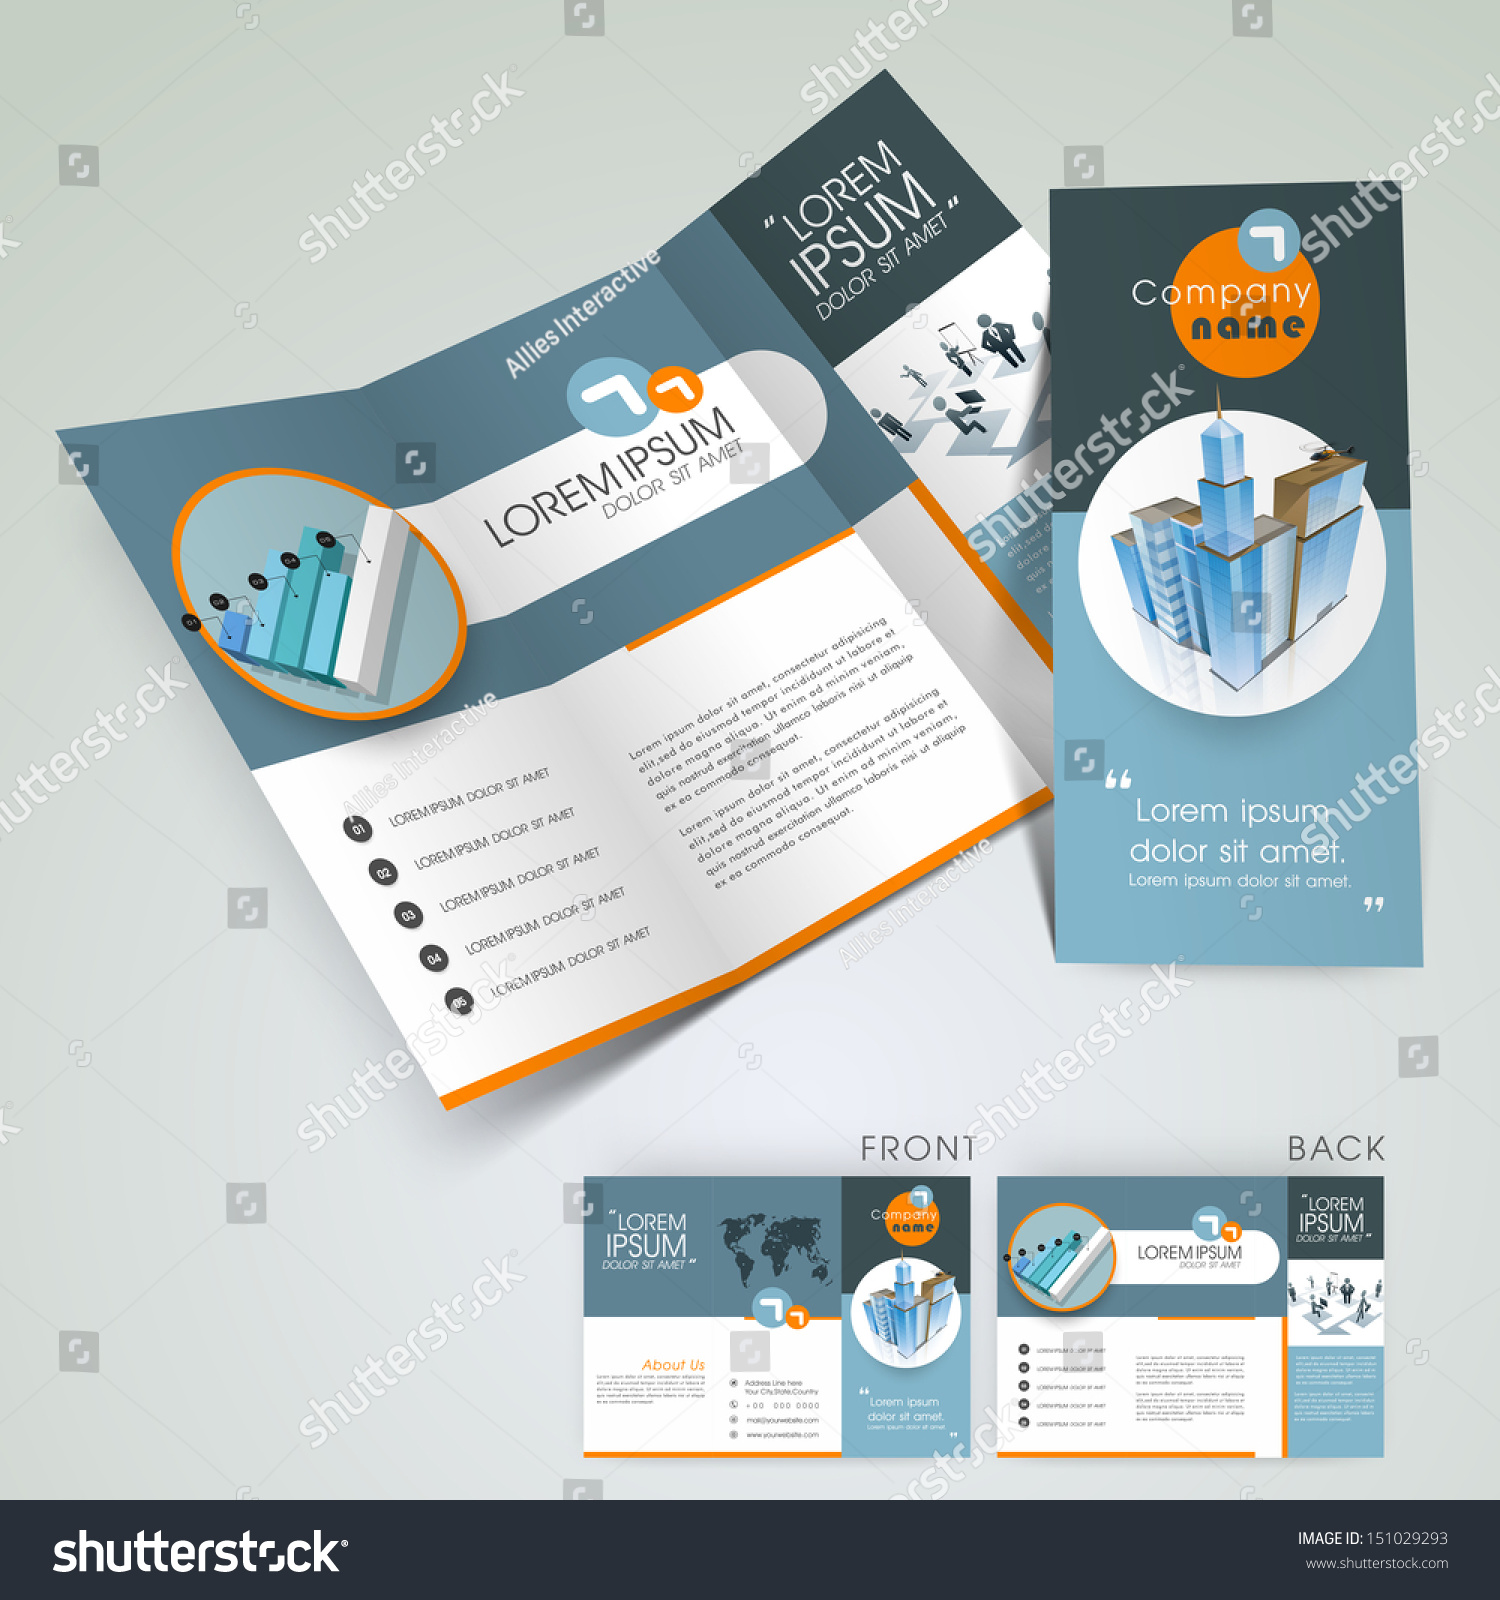 Delighted 1 2 3 Nu Opgaver Kapitel Resume Thick 1 Page Resume Templates Clean 1 Week Calendar Template 1.5 Button Template Youthful 10 Best Resume Templates Bright100 Chart Template Doc.#1300564: Three Fold Flyer Template \u2013 Free Corporate Tri Fold ..